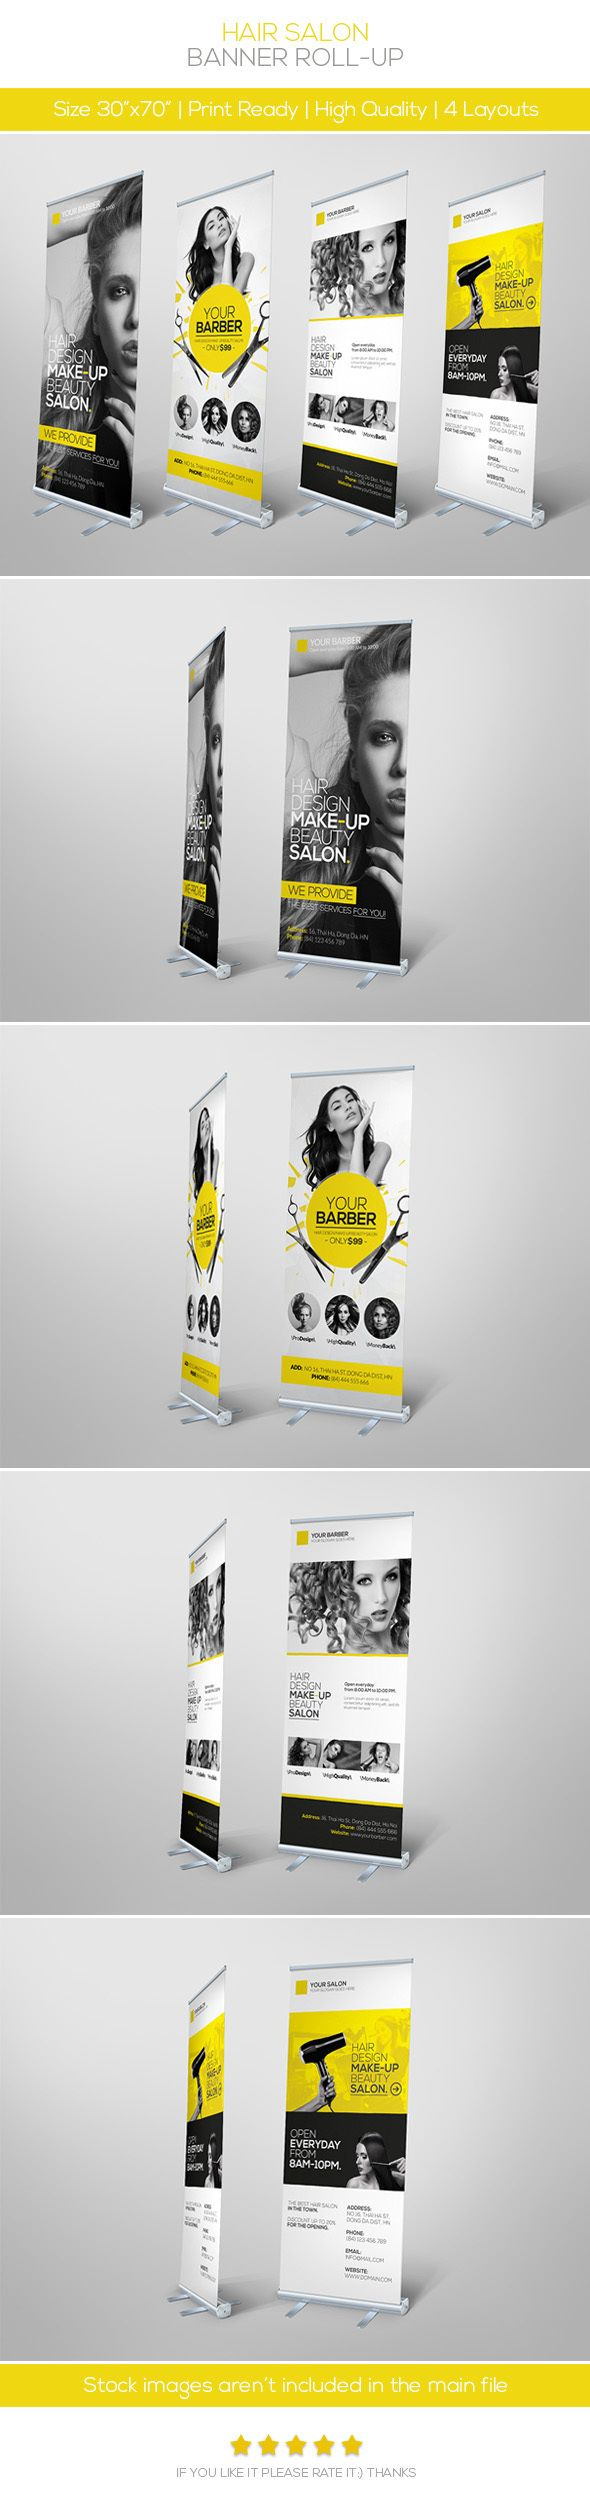 Banner Design Ideas 20 creative vertical banner design ideas Premium Hair Salon Roll Up Banner Banner Design Inspirationweb